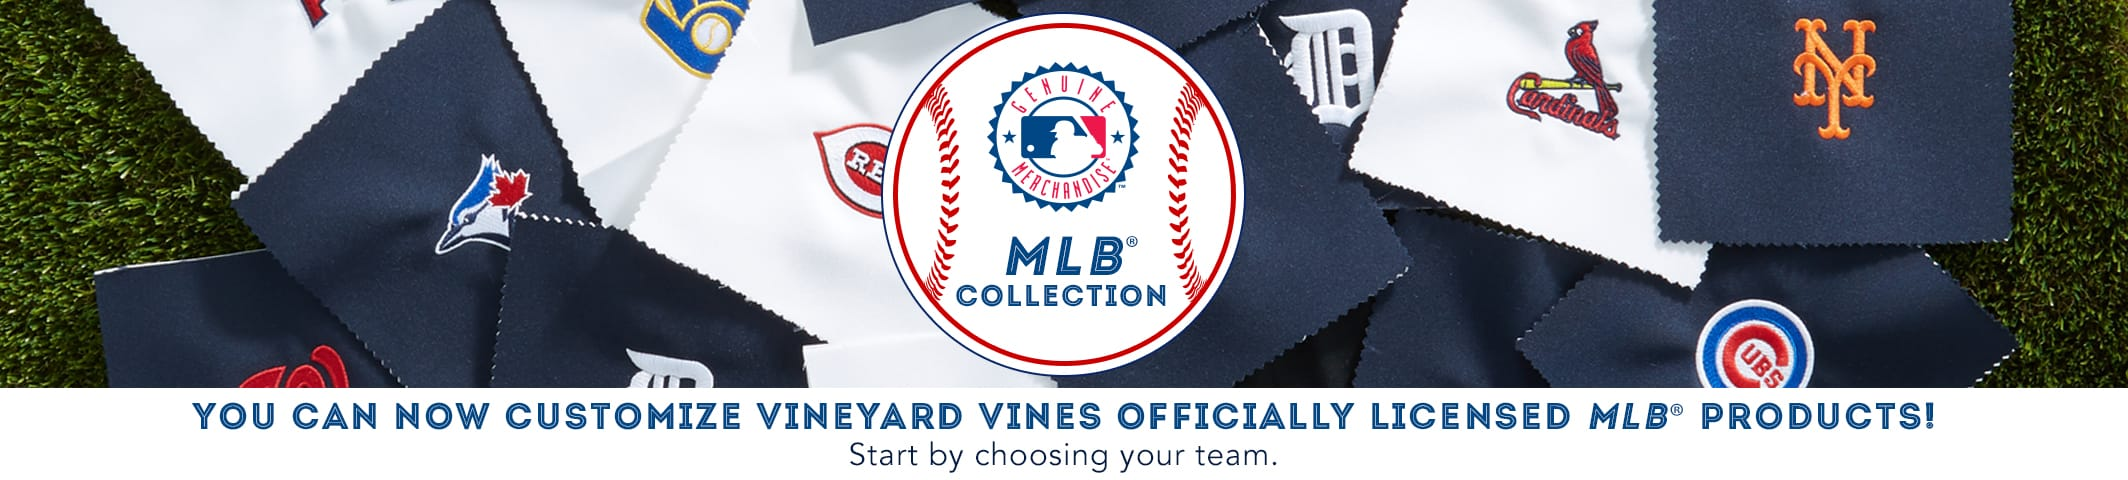 You can now customize vineyard vines official MLB products! Start by choosing your team below.